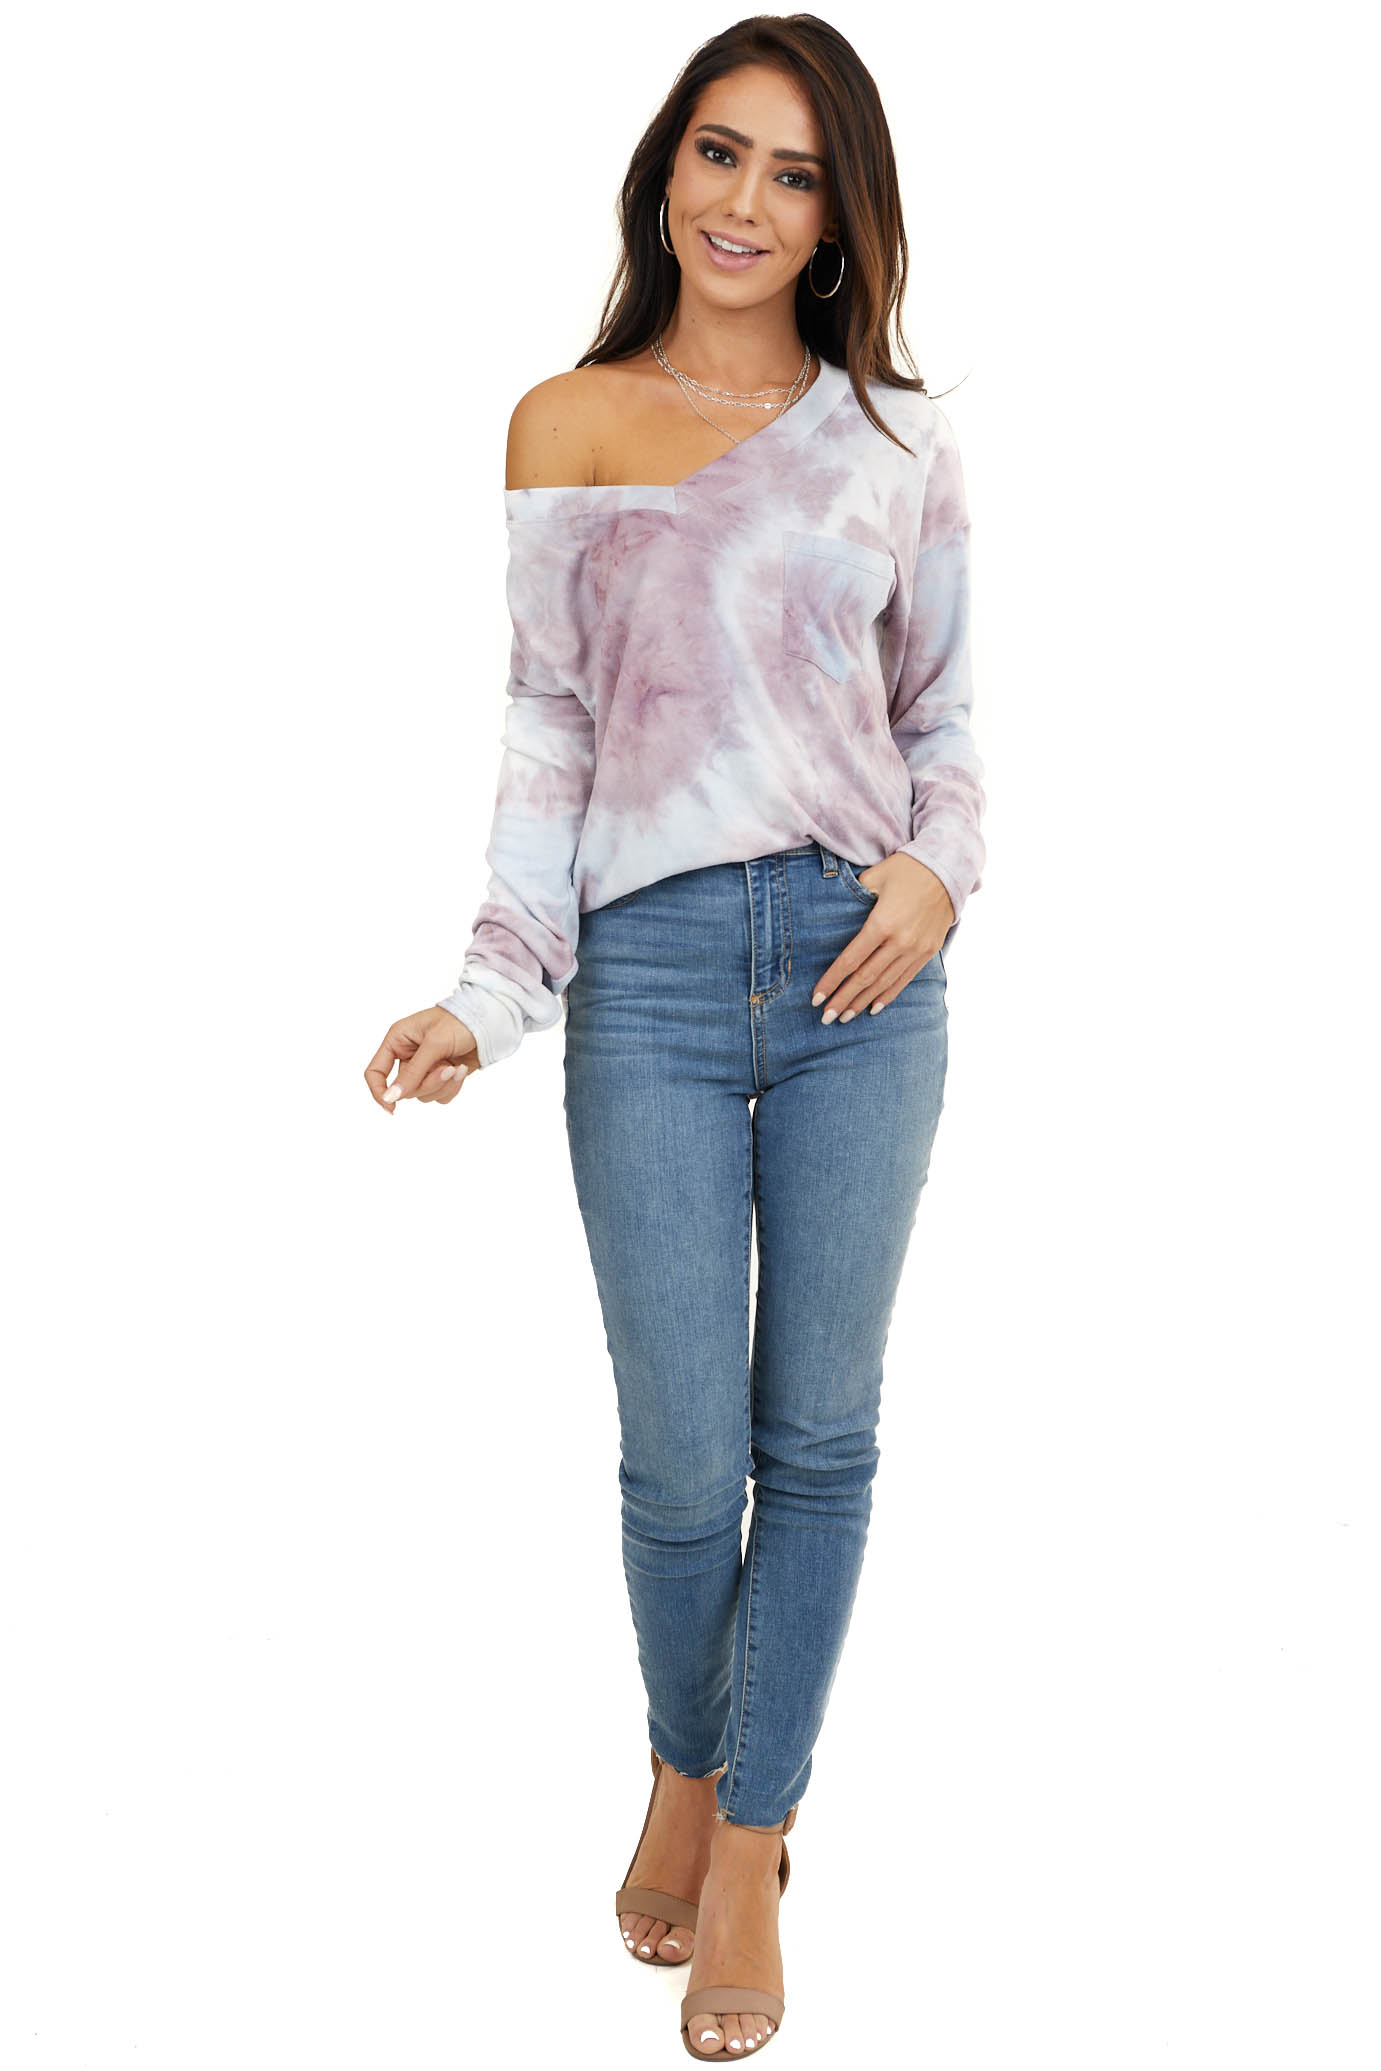 Lilac and Baby Blue Tie Dye Long Sleeve with Front Pocket